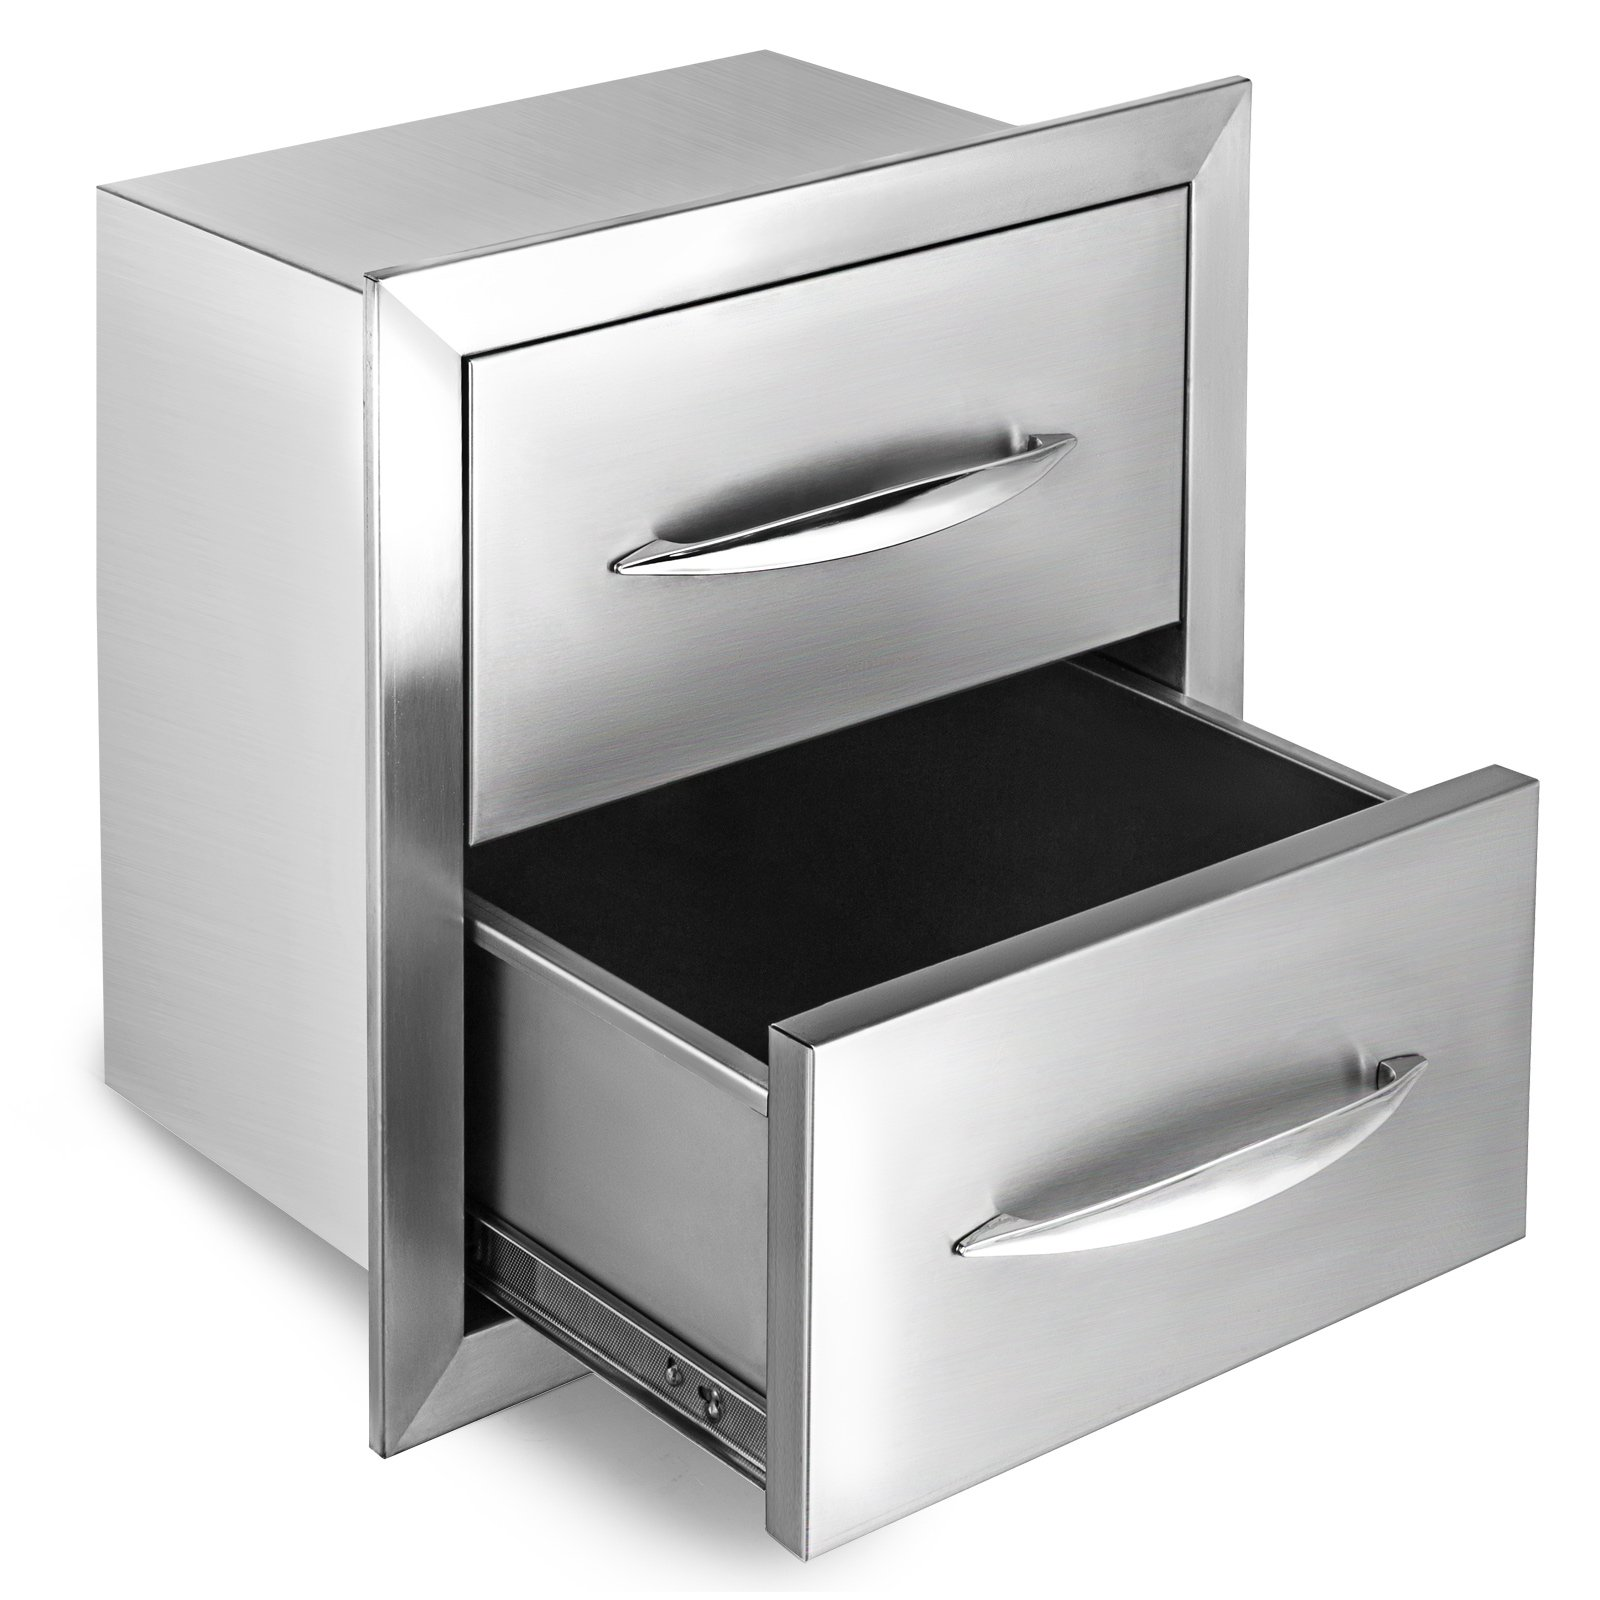 Happybuy Outdoor Kitchen Drawer 18''x15'' Stainless Steel BBQ Island Drawer Storage with Chrome Handle Double Access Drawer Flush Mount Sliver Double Access Drawer (Outdoor Kitchen Drawer 18''x15'')